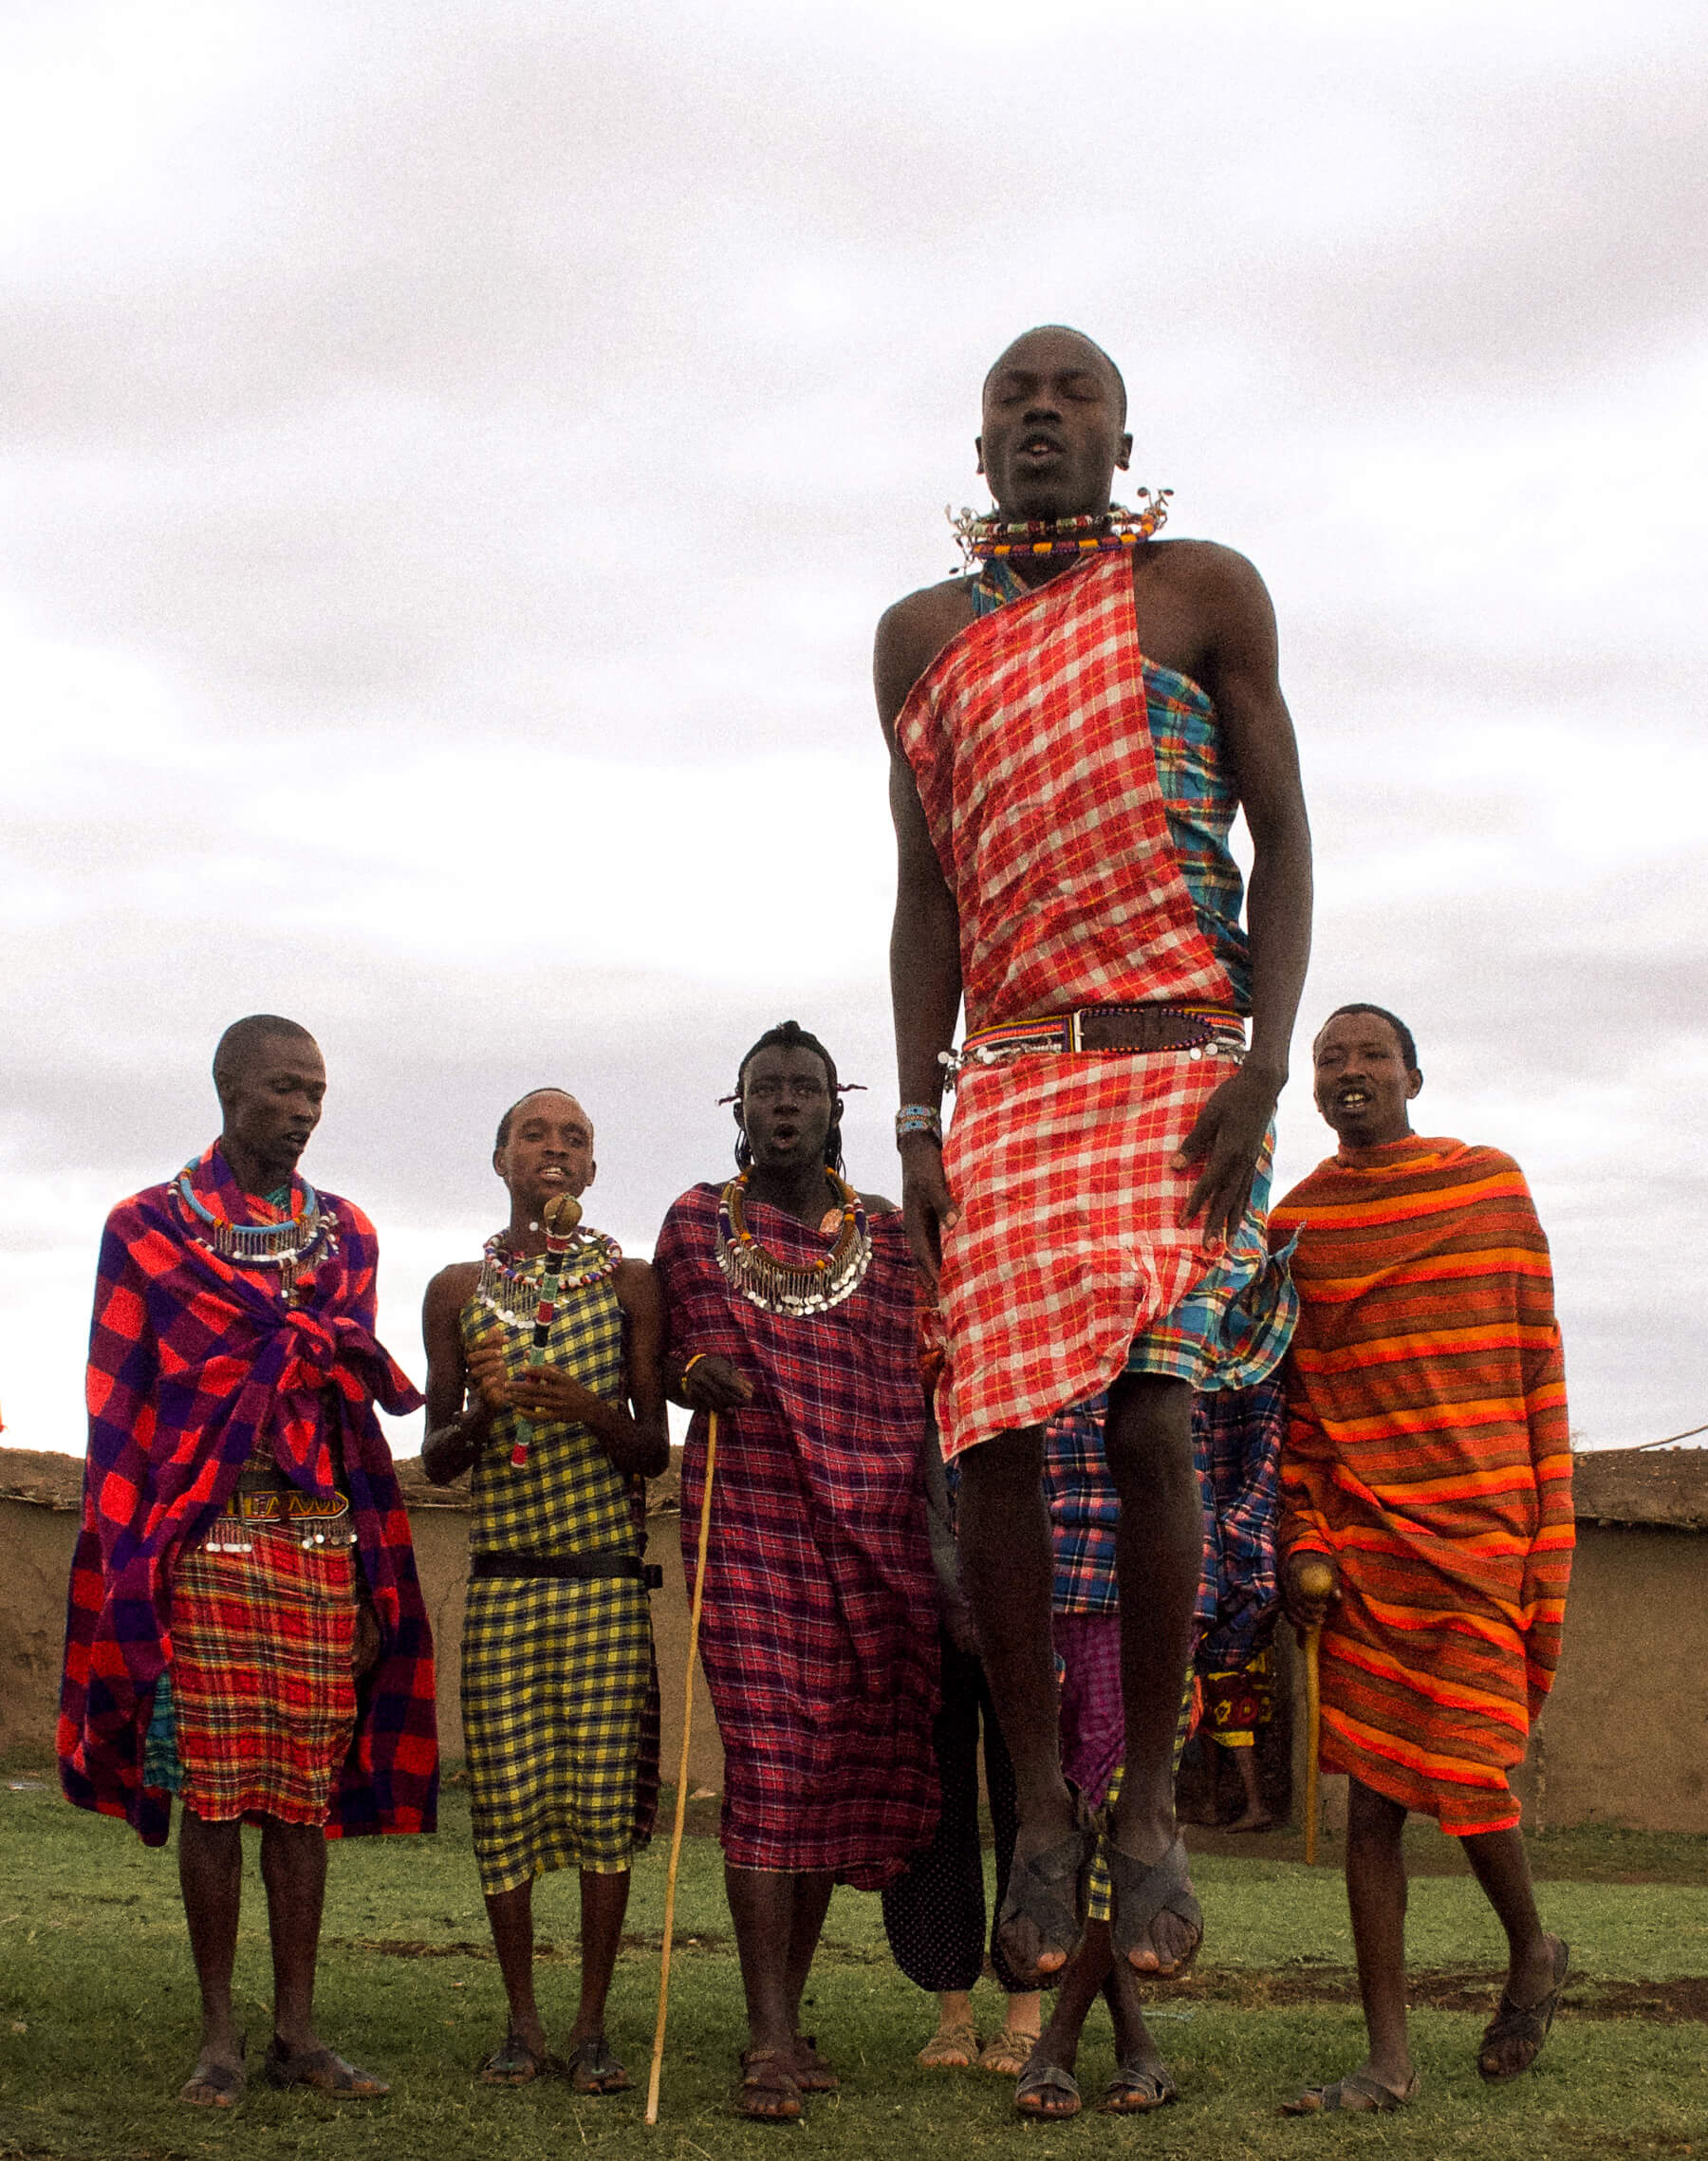 LIFE IN A KENYAN MAASAI VILLAGE